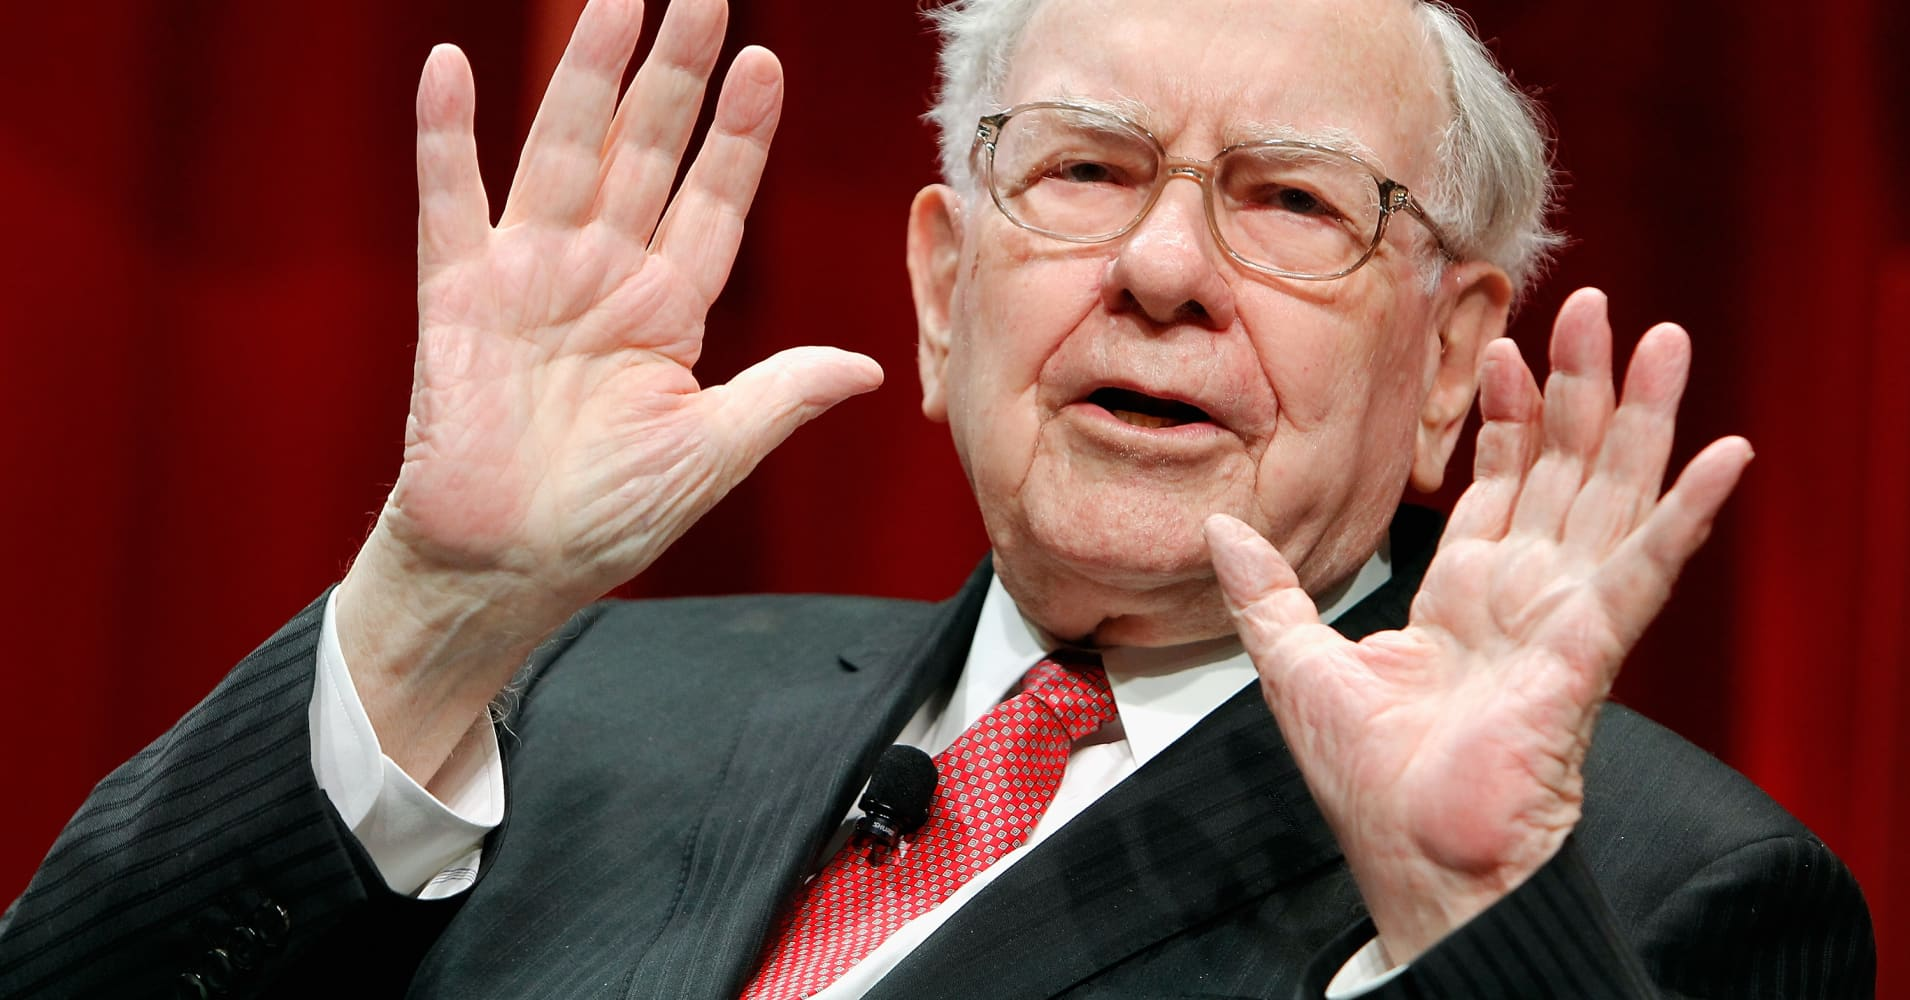 Berkshire shareholder: I don't know why the company bought more Apple